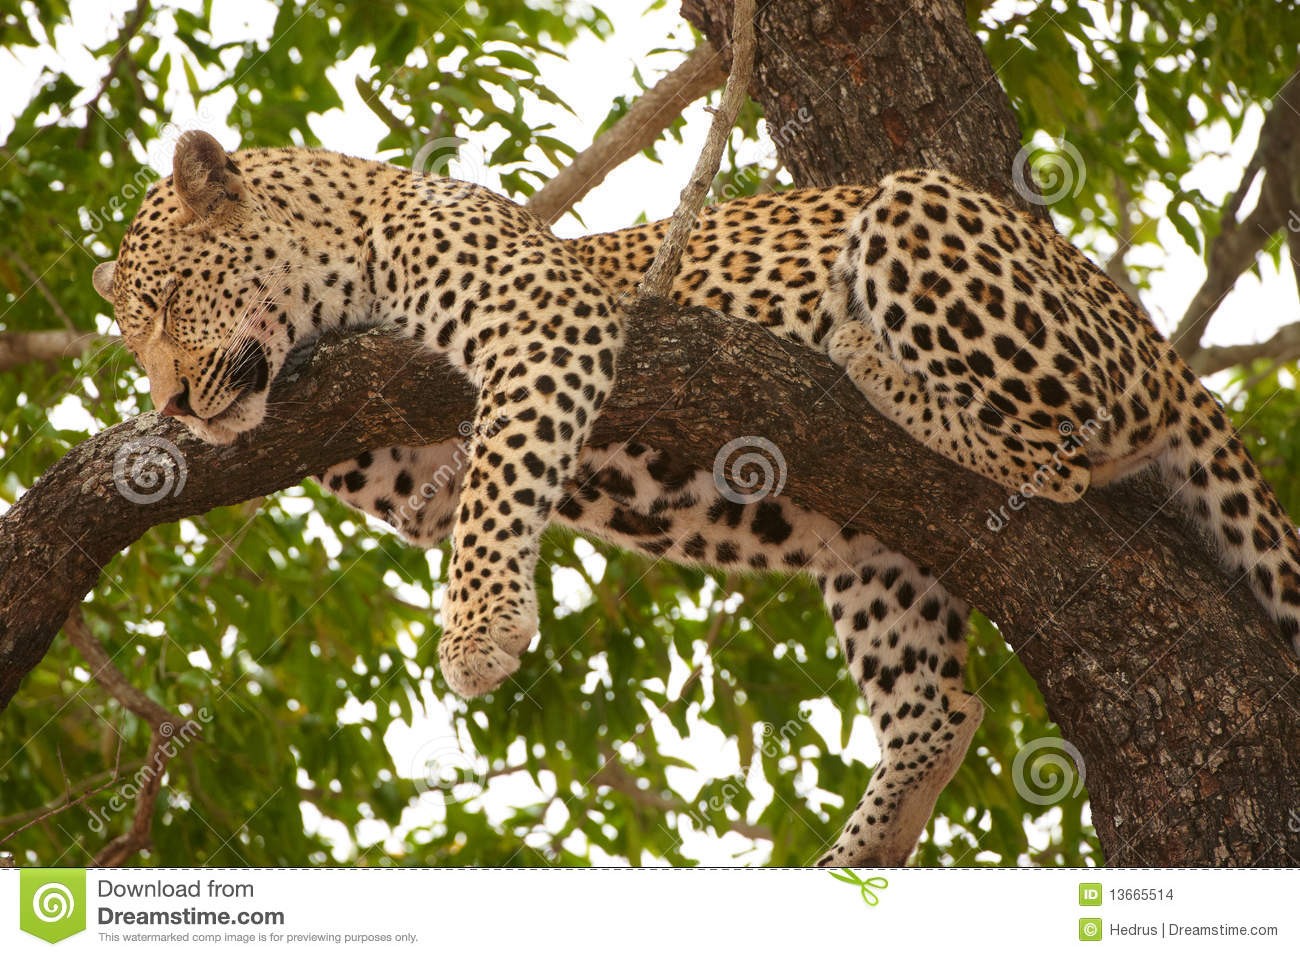 Cute Baby Sleeping Wallpapers Leopard Sleeping On The Tree Stock Images Image 13665514